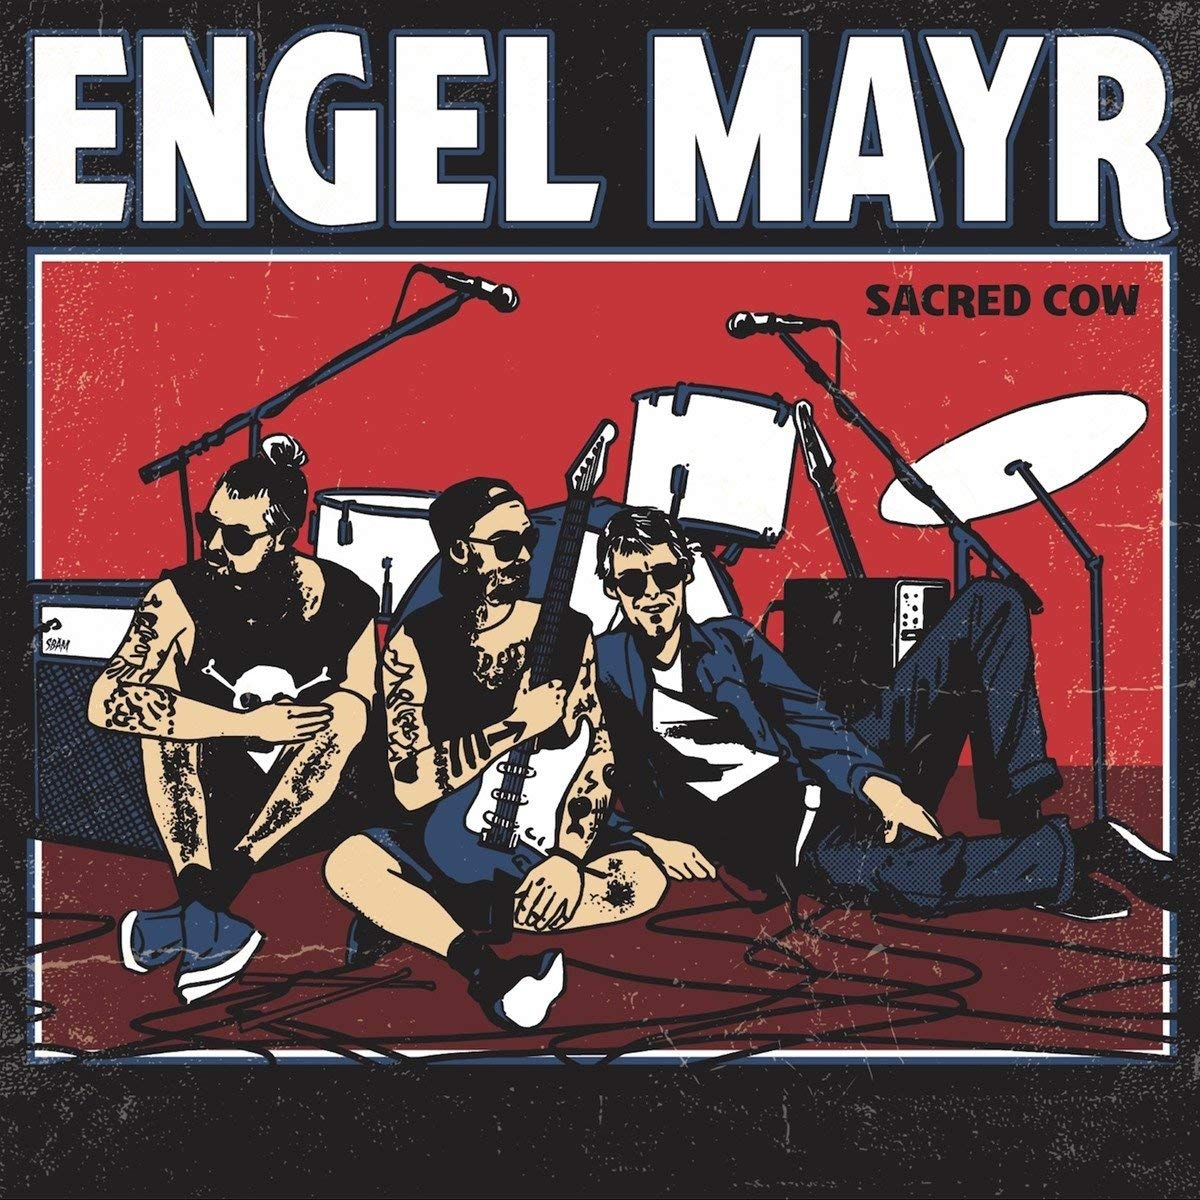 engel-mayr-sacred-cow-fuer-gitarrenfreaks-cd-review